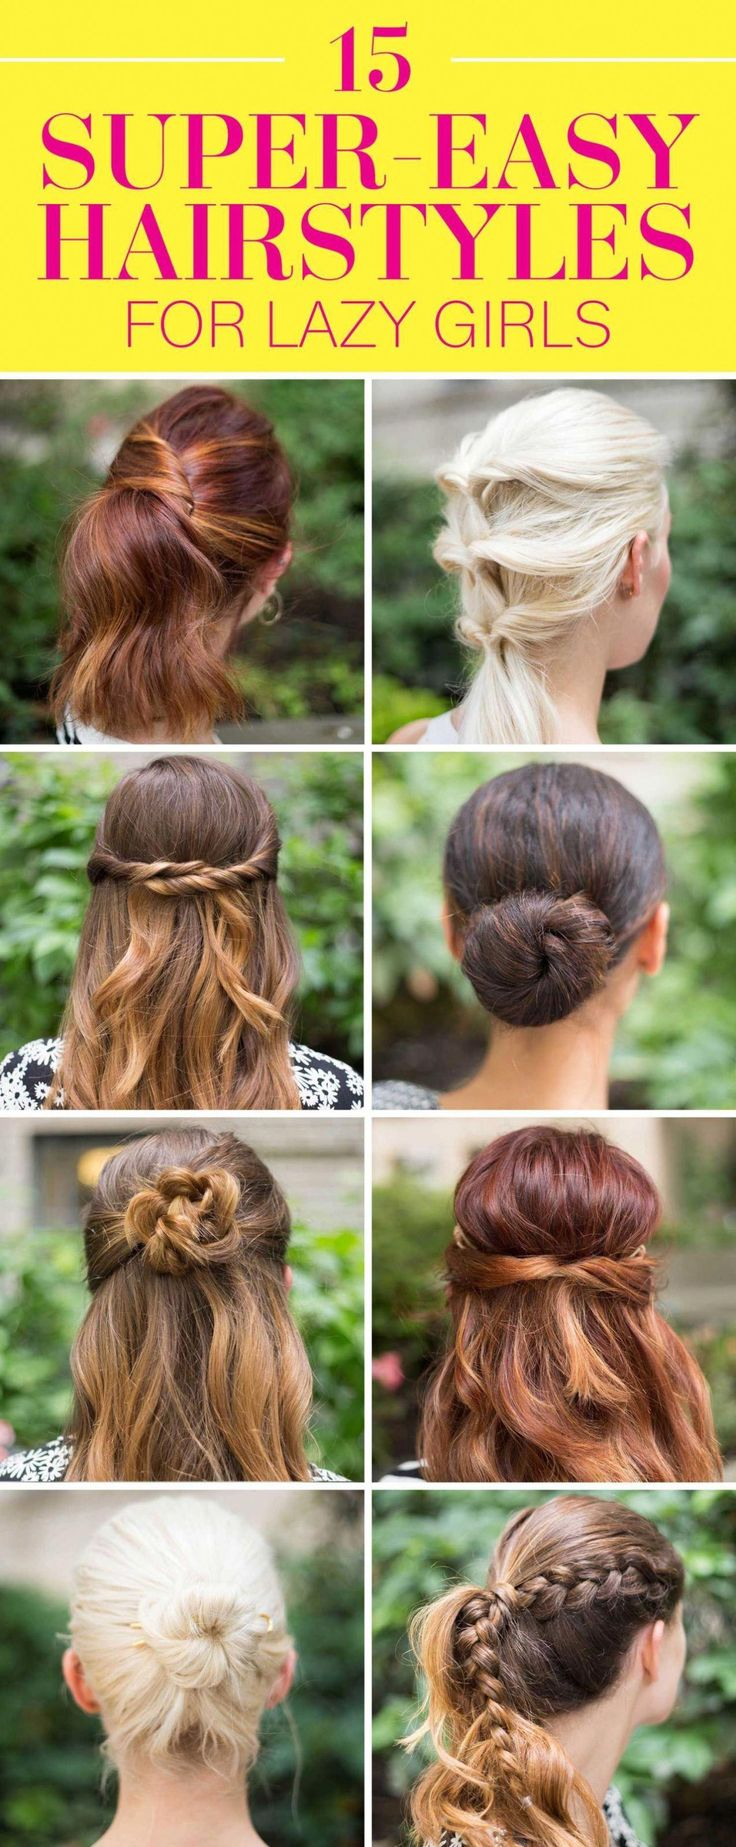 15 Super-Easy Hairstyles for Lazy Girls Who Can't Even #Easyhairstyles